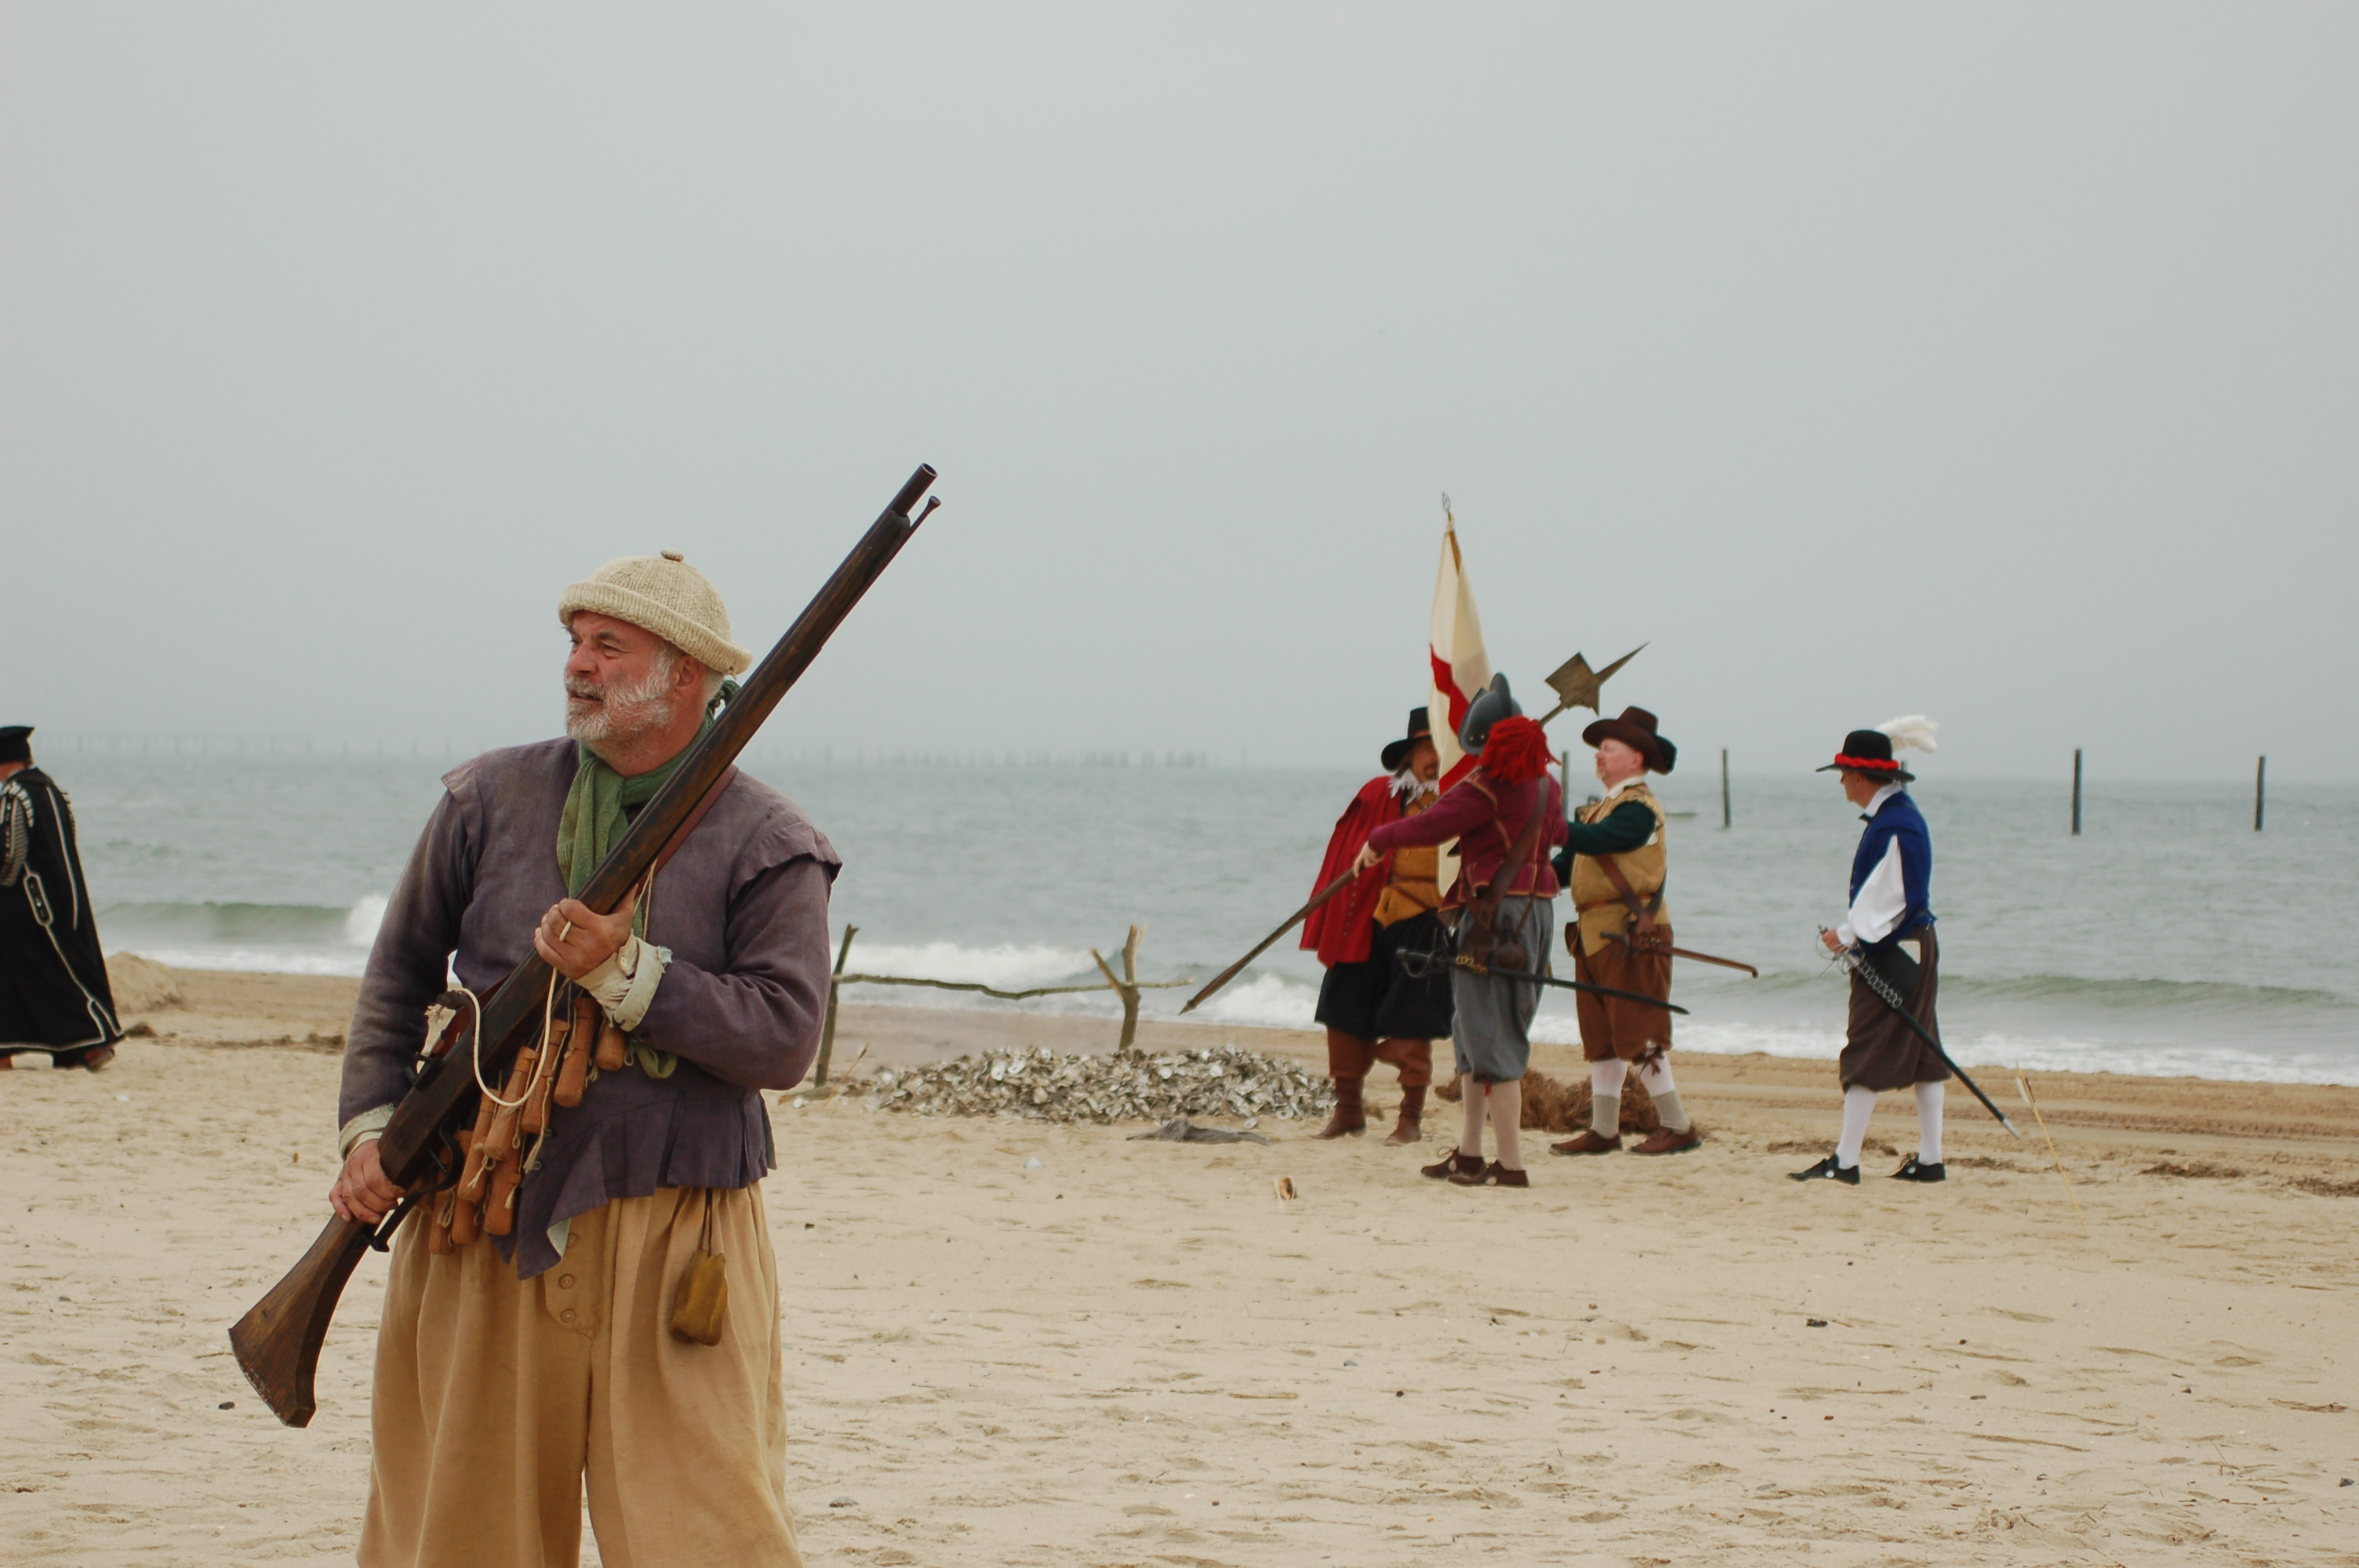 File:Actors for re-enactment (5850654637).jpg - Wikimedia Commons